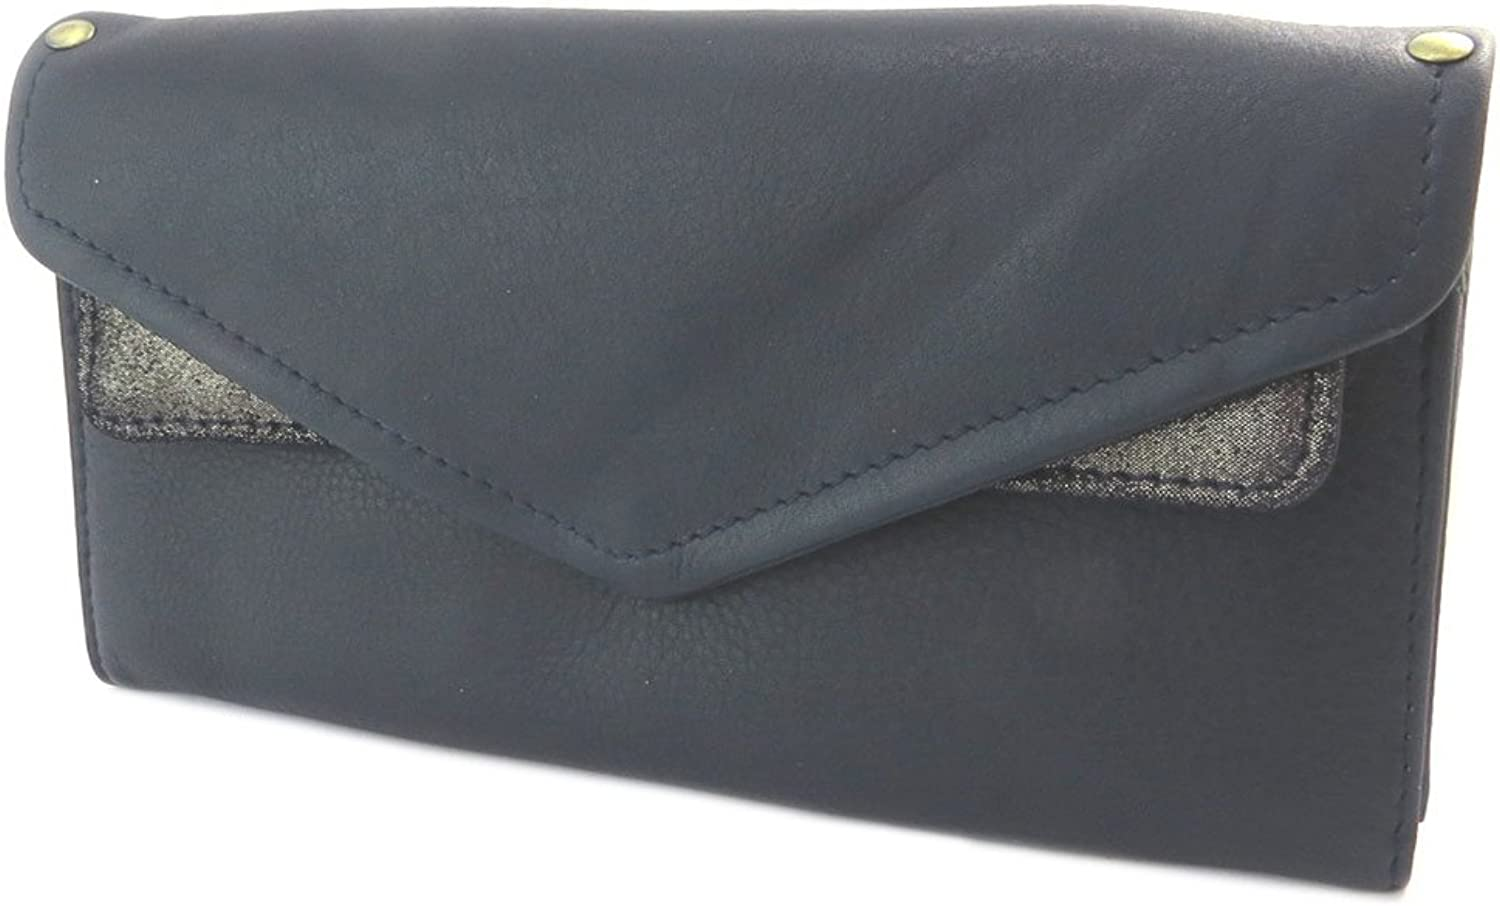 Anaik [P4327]  Leather mate 'Anaik' navy bluee gold (double compartments) 20x10x1.5 cm (7.87''x3.94''x0.59'').